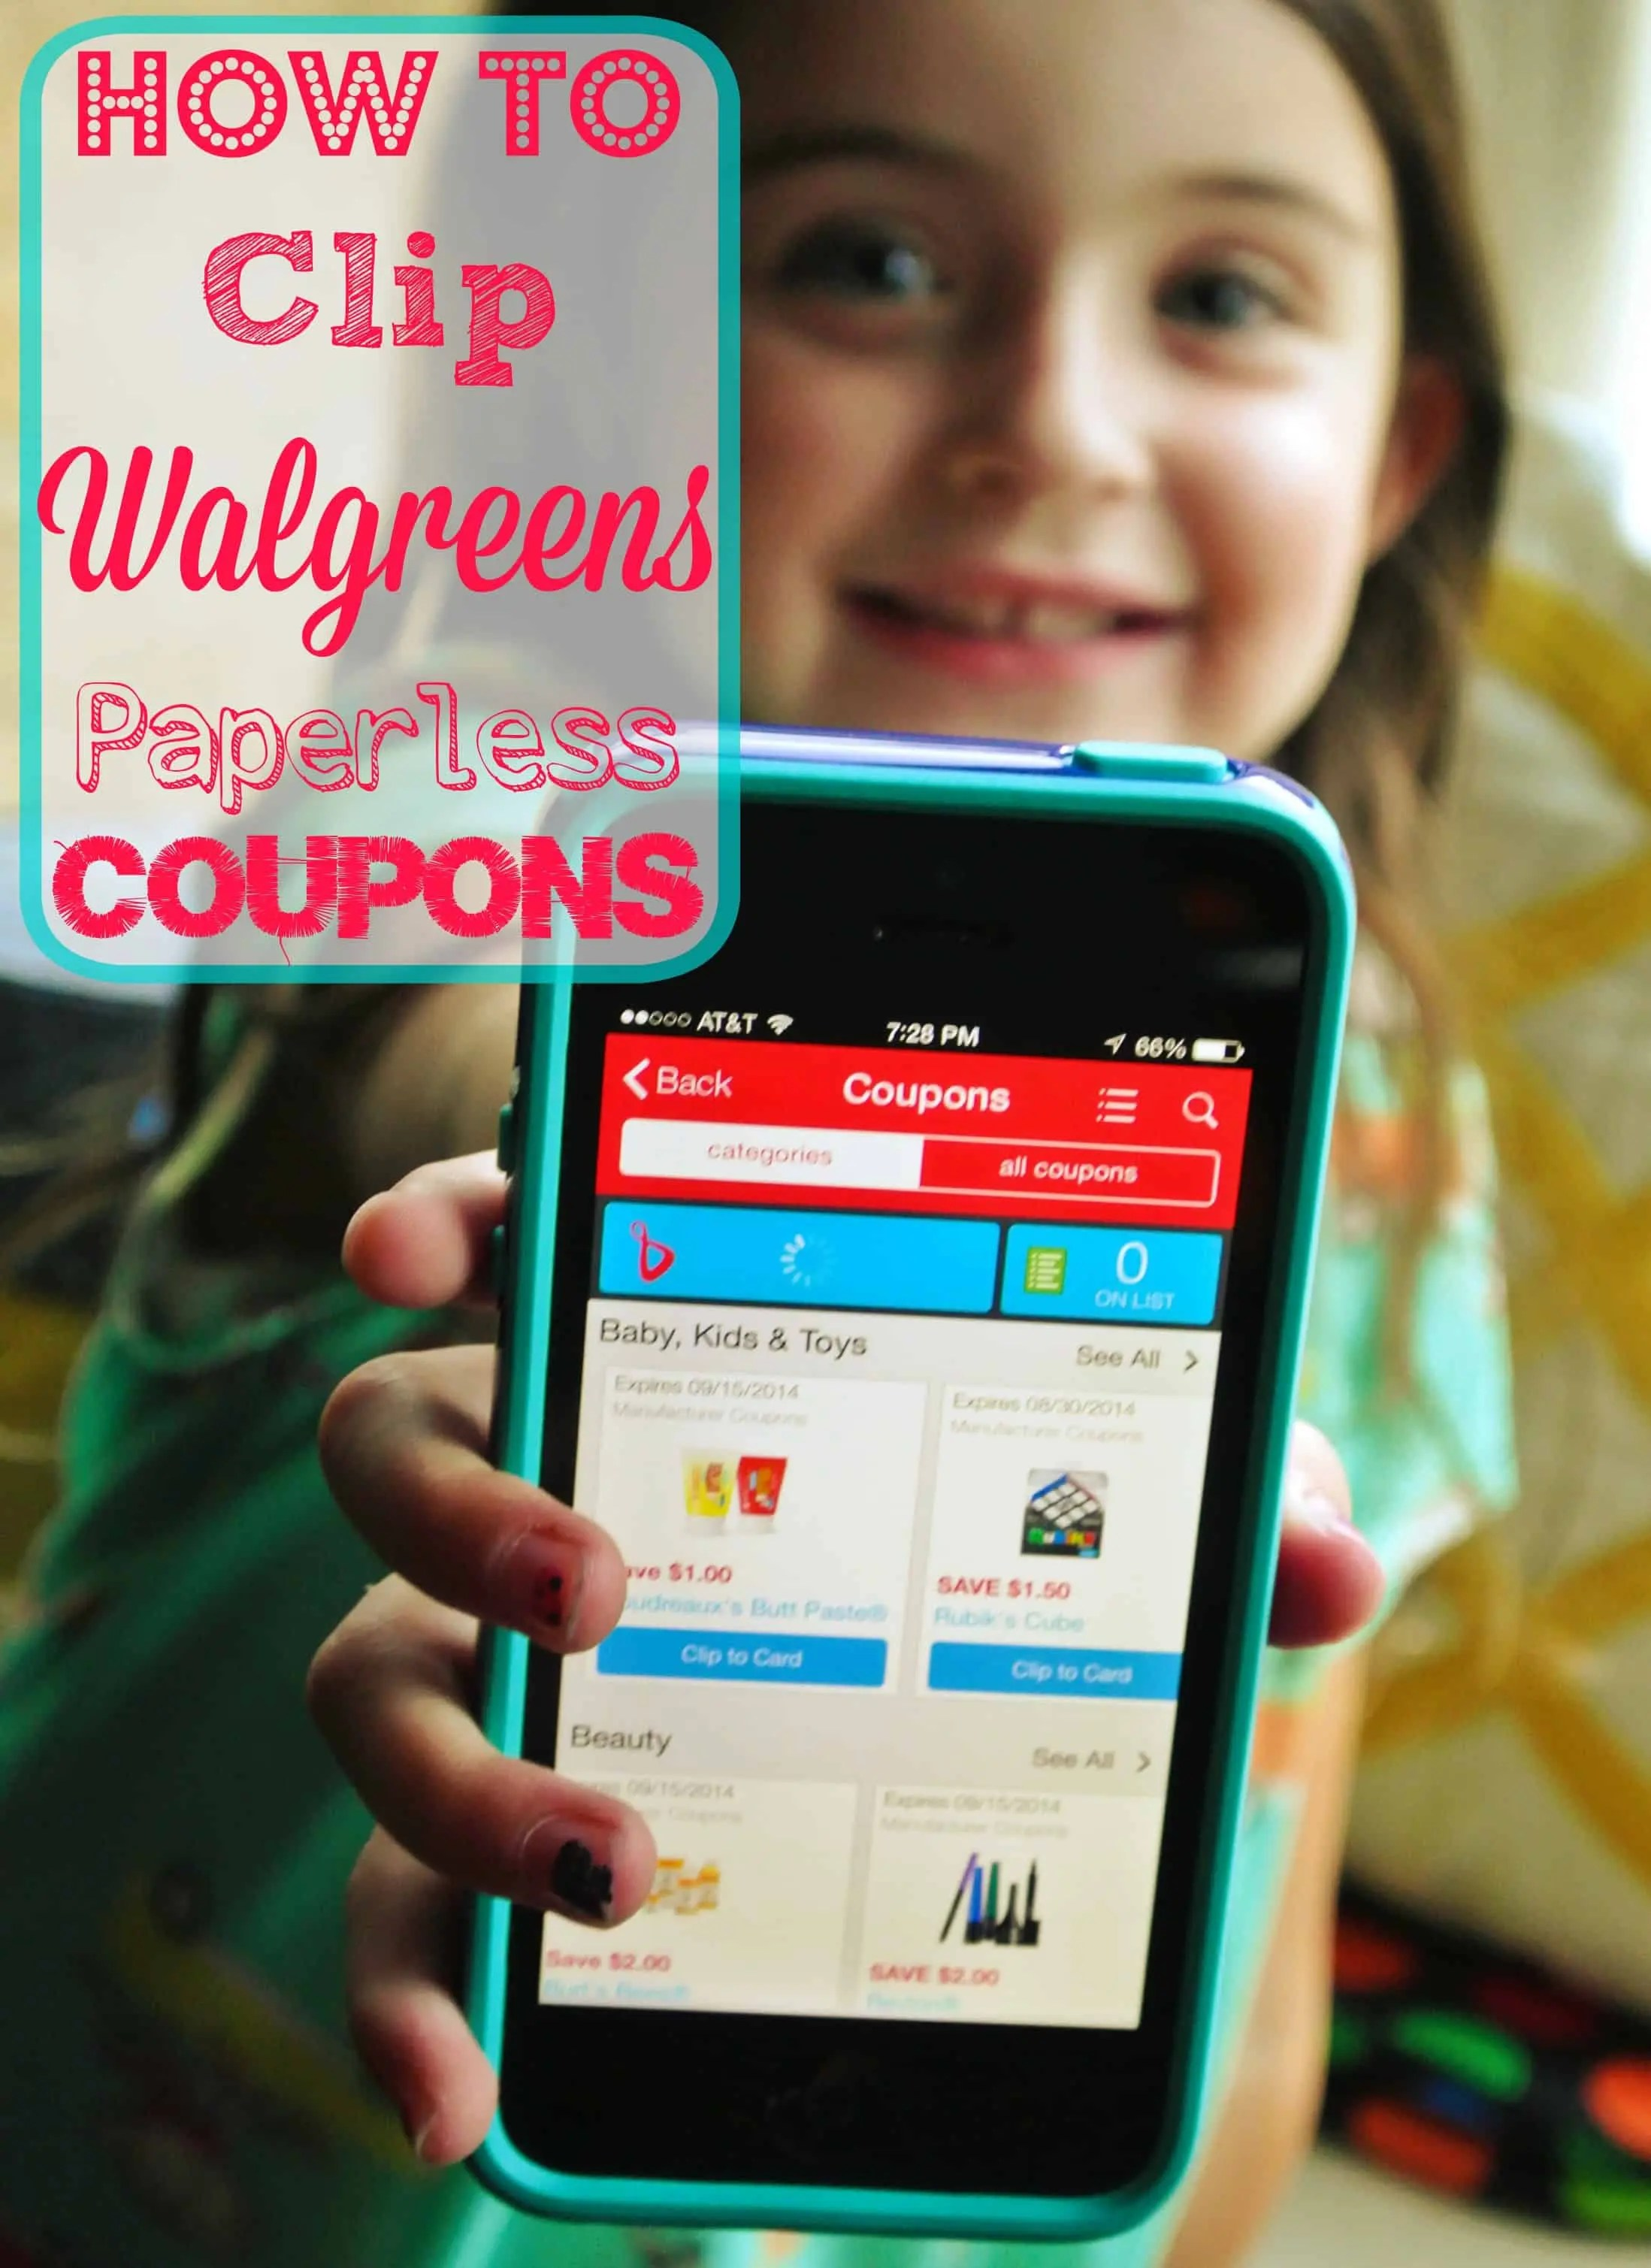 How to clip walgreens paperless coupons